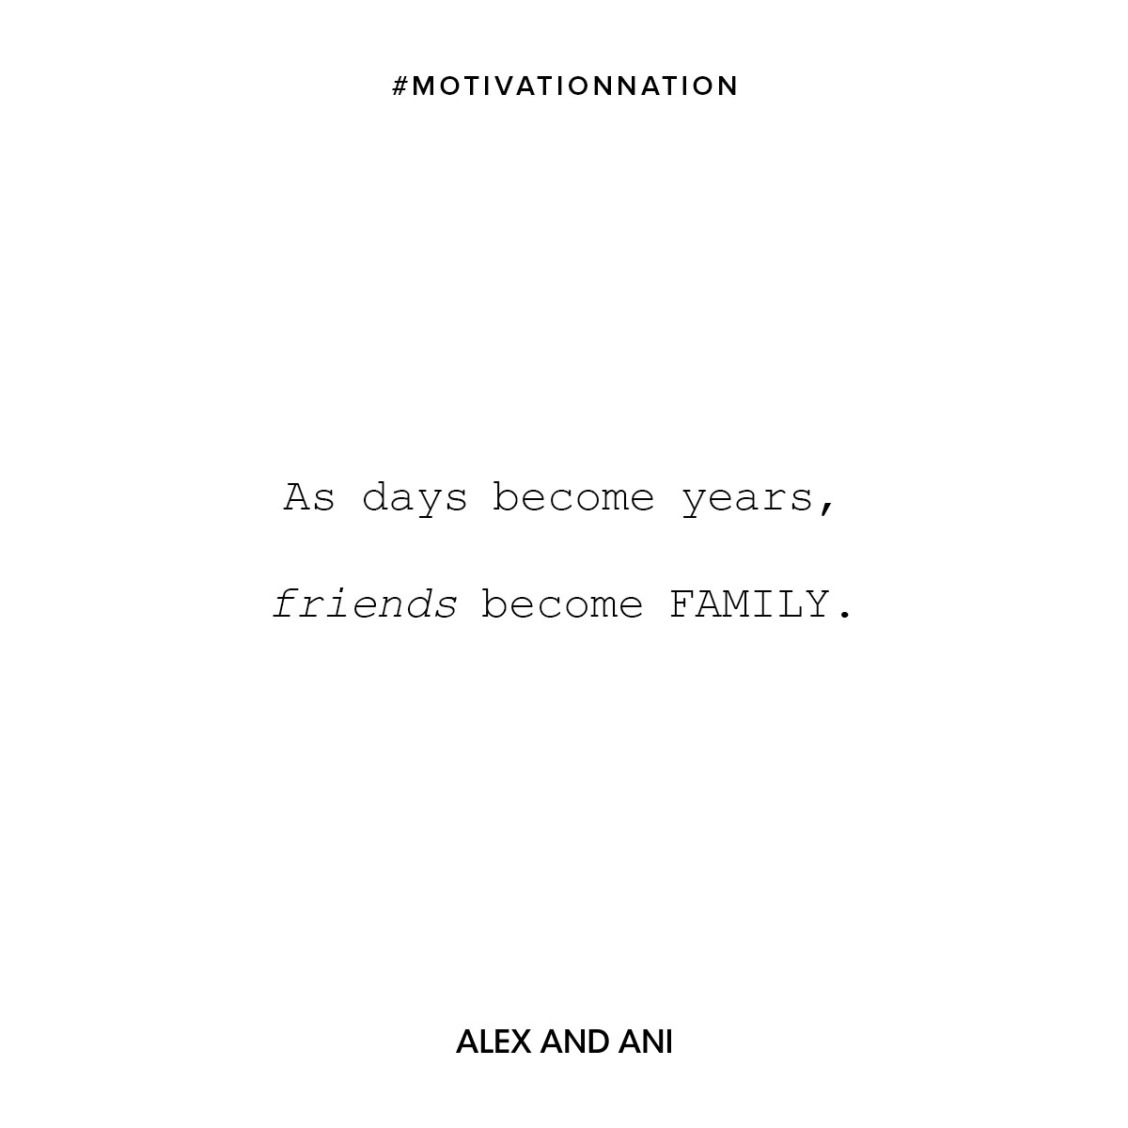 Motivationnation withlove best friend insta captions cool insta captions instagram captions family